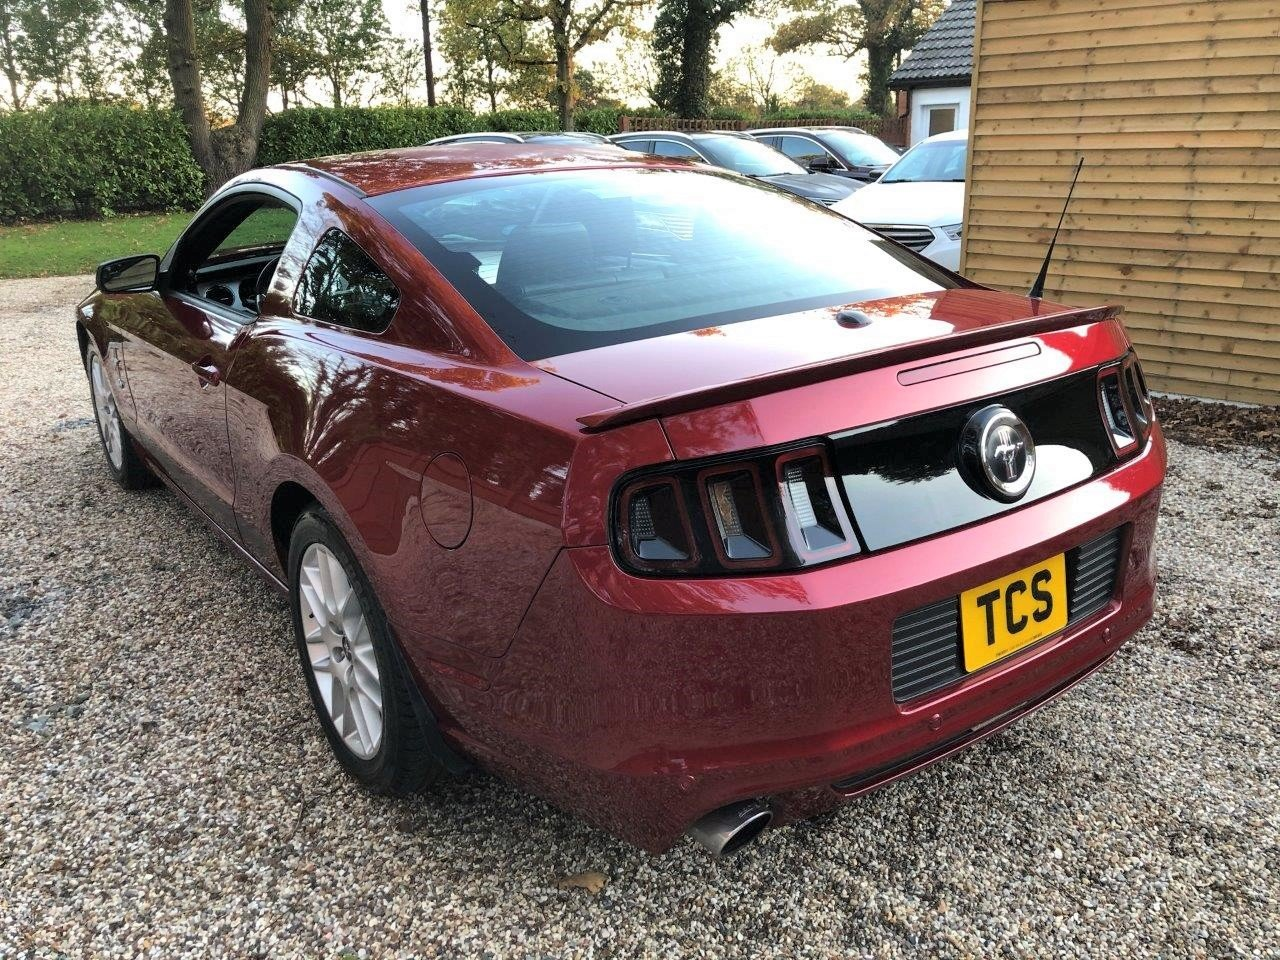 2014 15-Plate UK Registered Mustang Premium Fastback LHD Auto For Sale (picture 2 of 6)